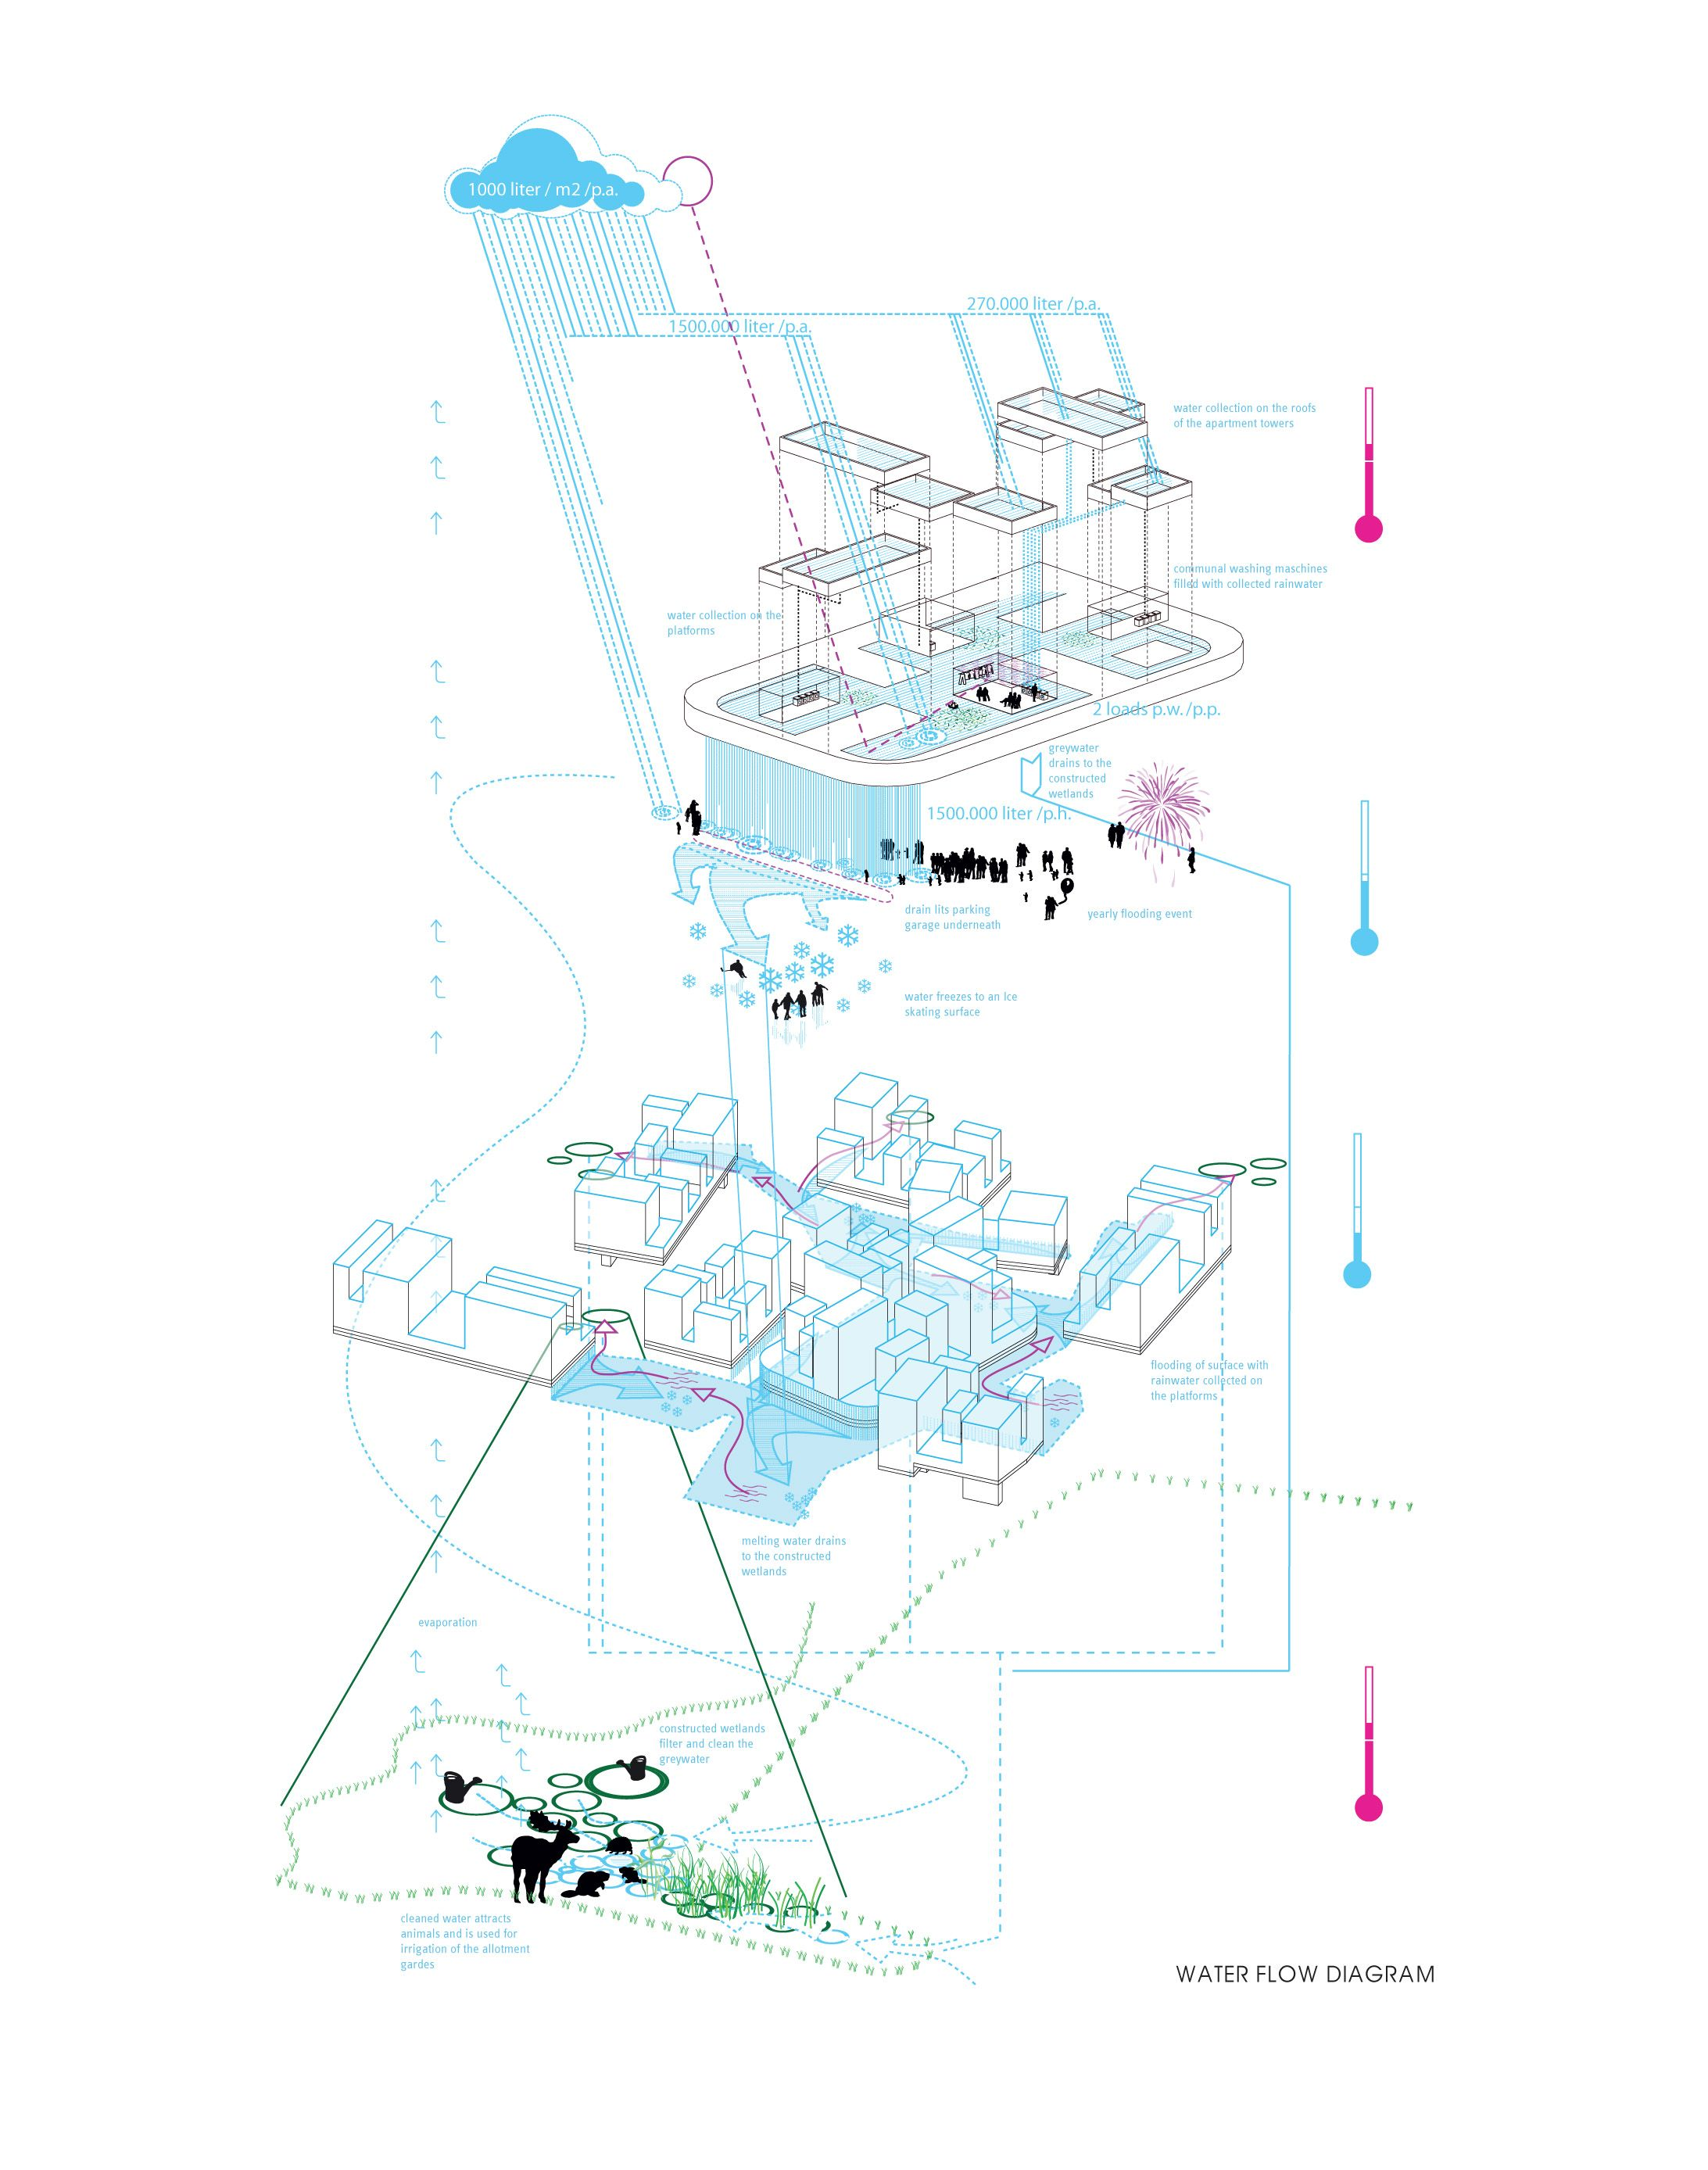 water flow diagram system architecture architecture concept diagram water architecture architecture visualization  [ 2185 x 2776 Pixel ]